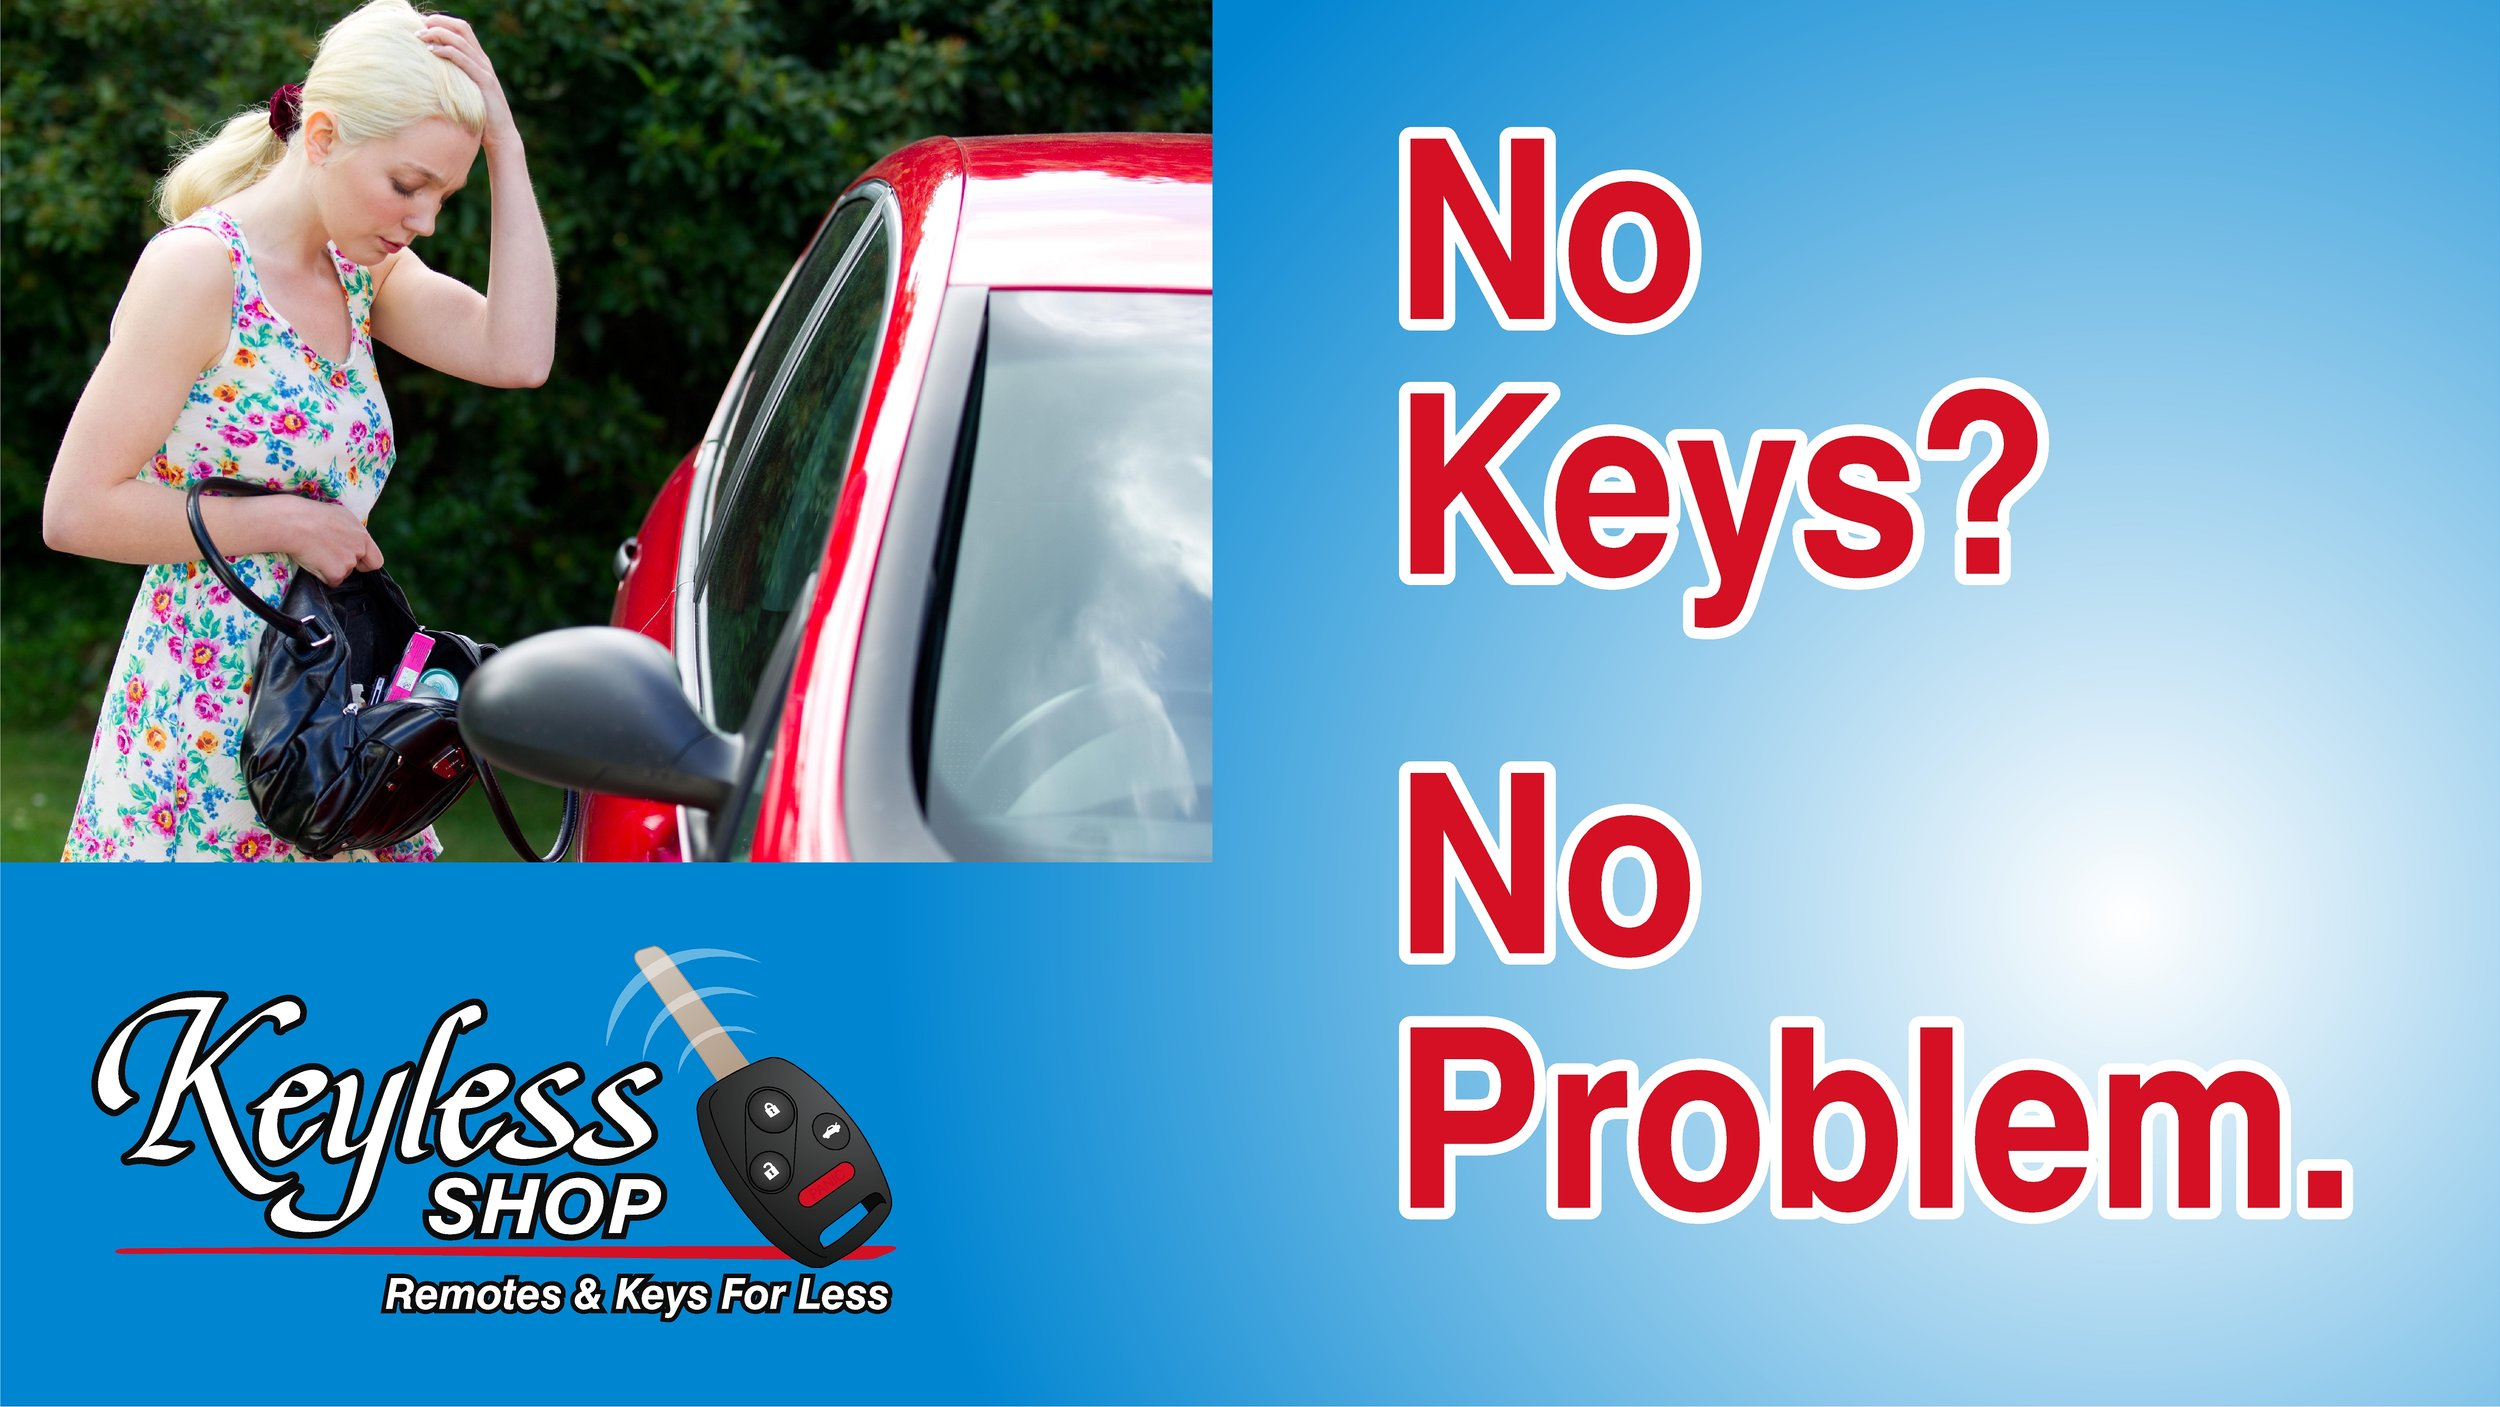 Can Aaa Replace Lost Car Keys The Keyless Shop At Sears Car